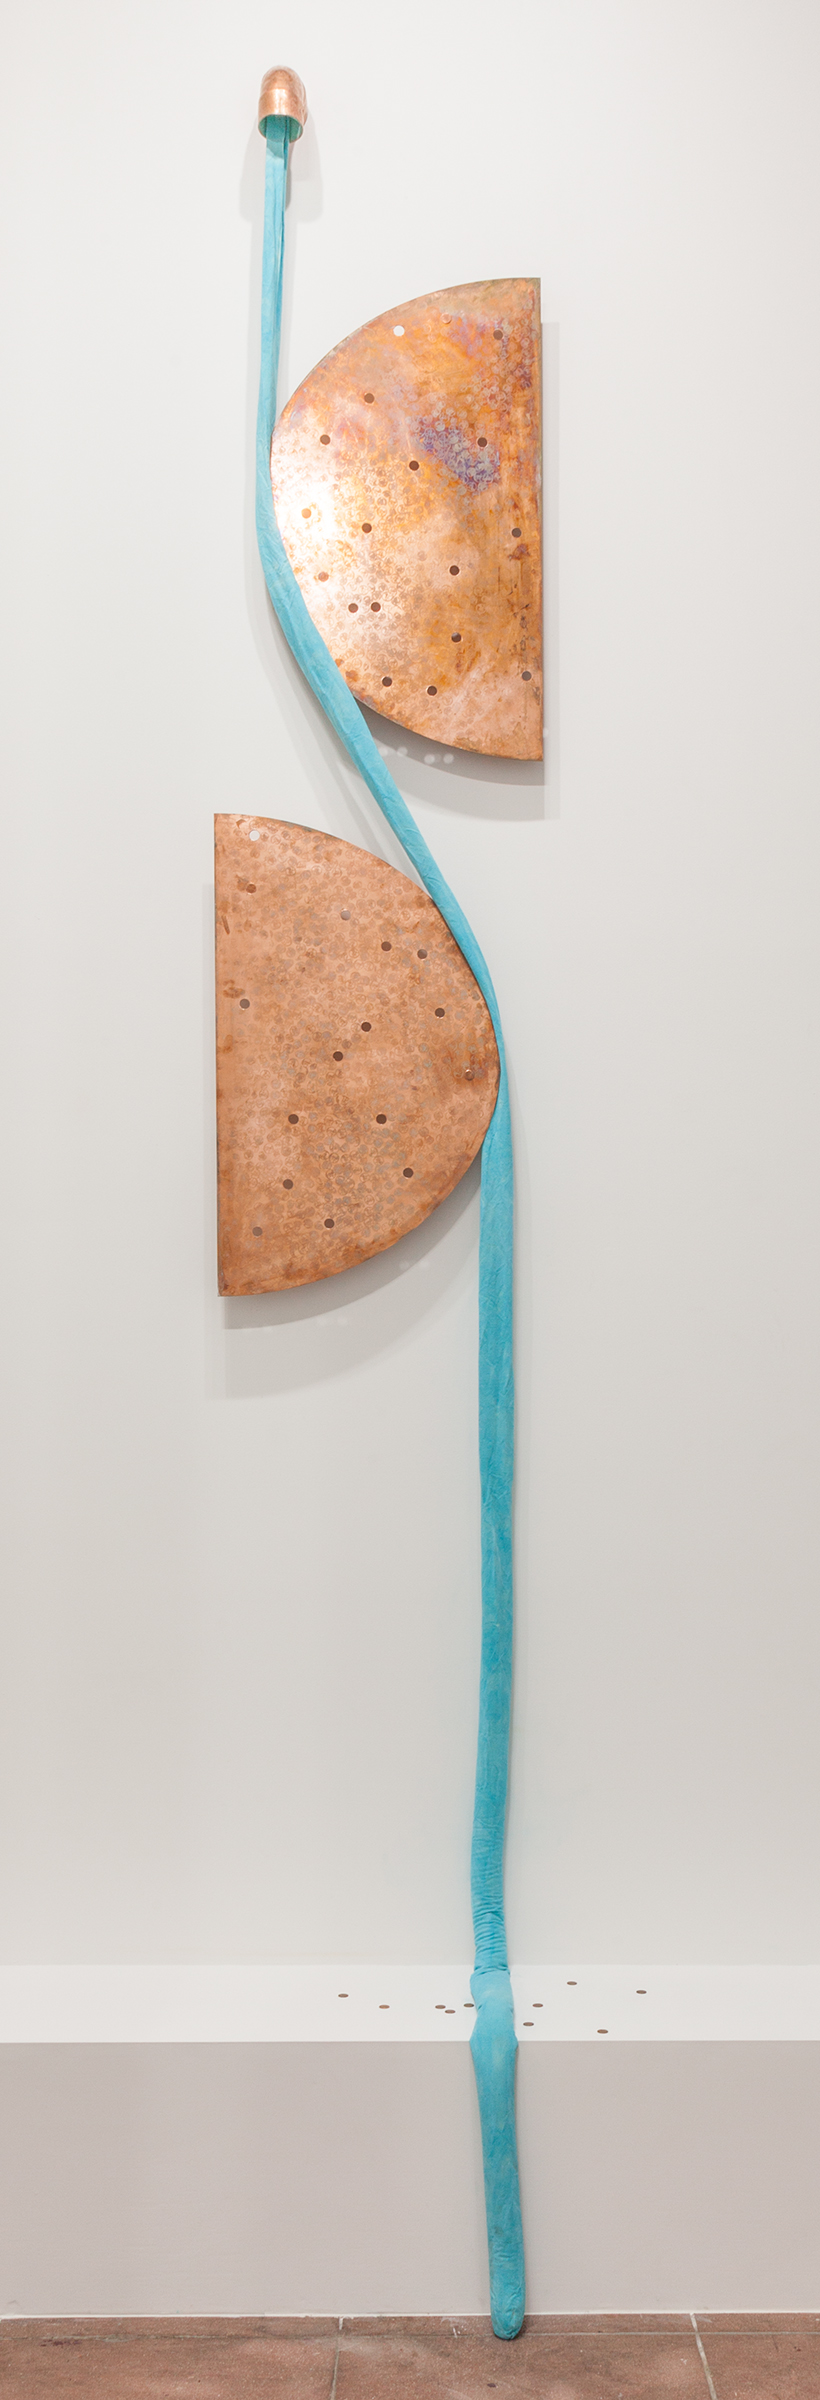 Jory Rabinovitz,  EBB3 (B2)  , 2014, melted pennies, pennies, Verdigris, fabric, rain water, dimensions variable